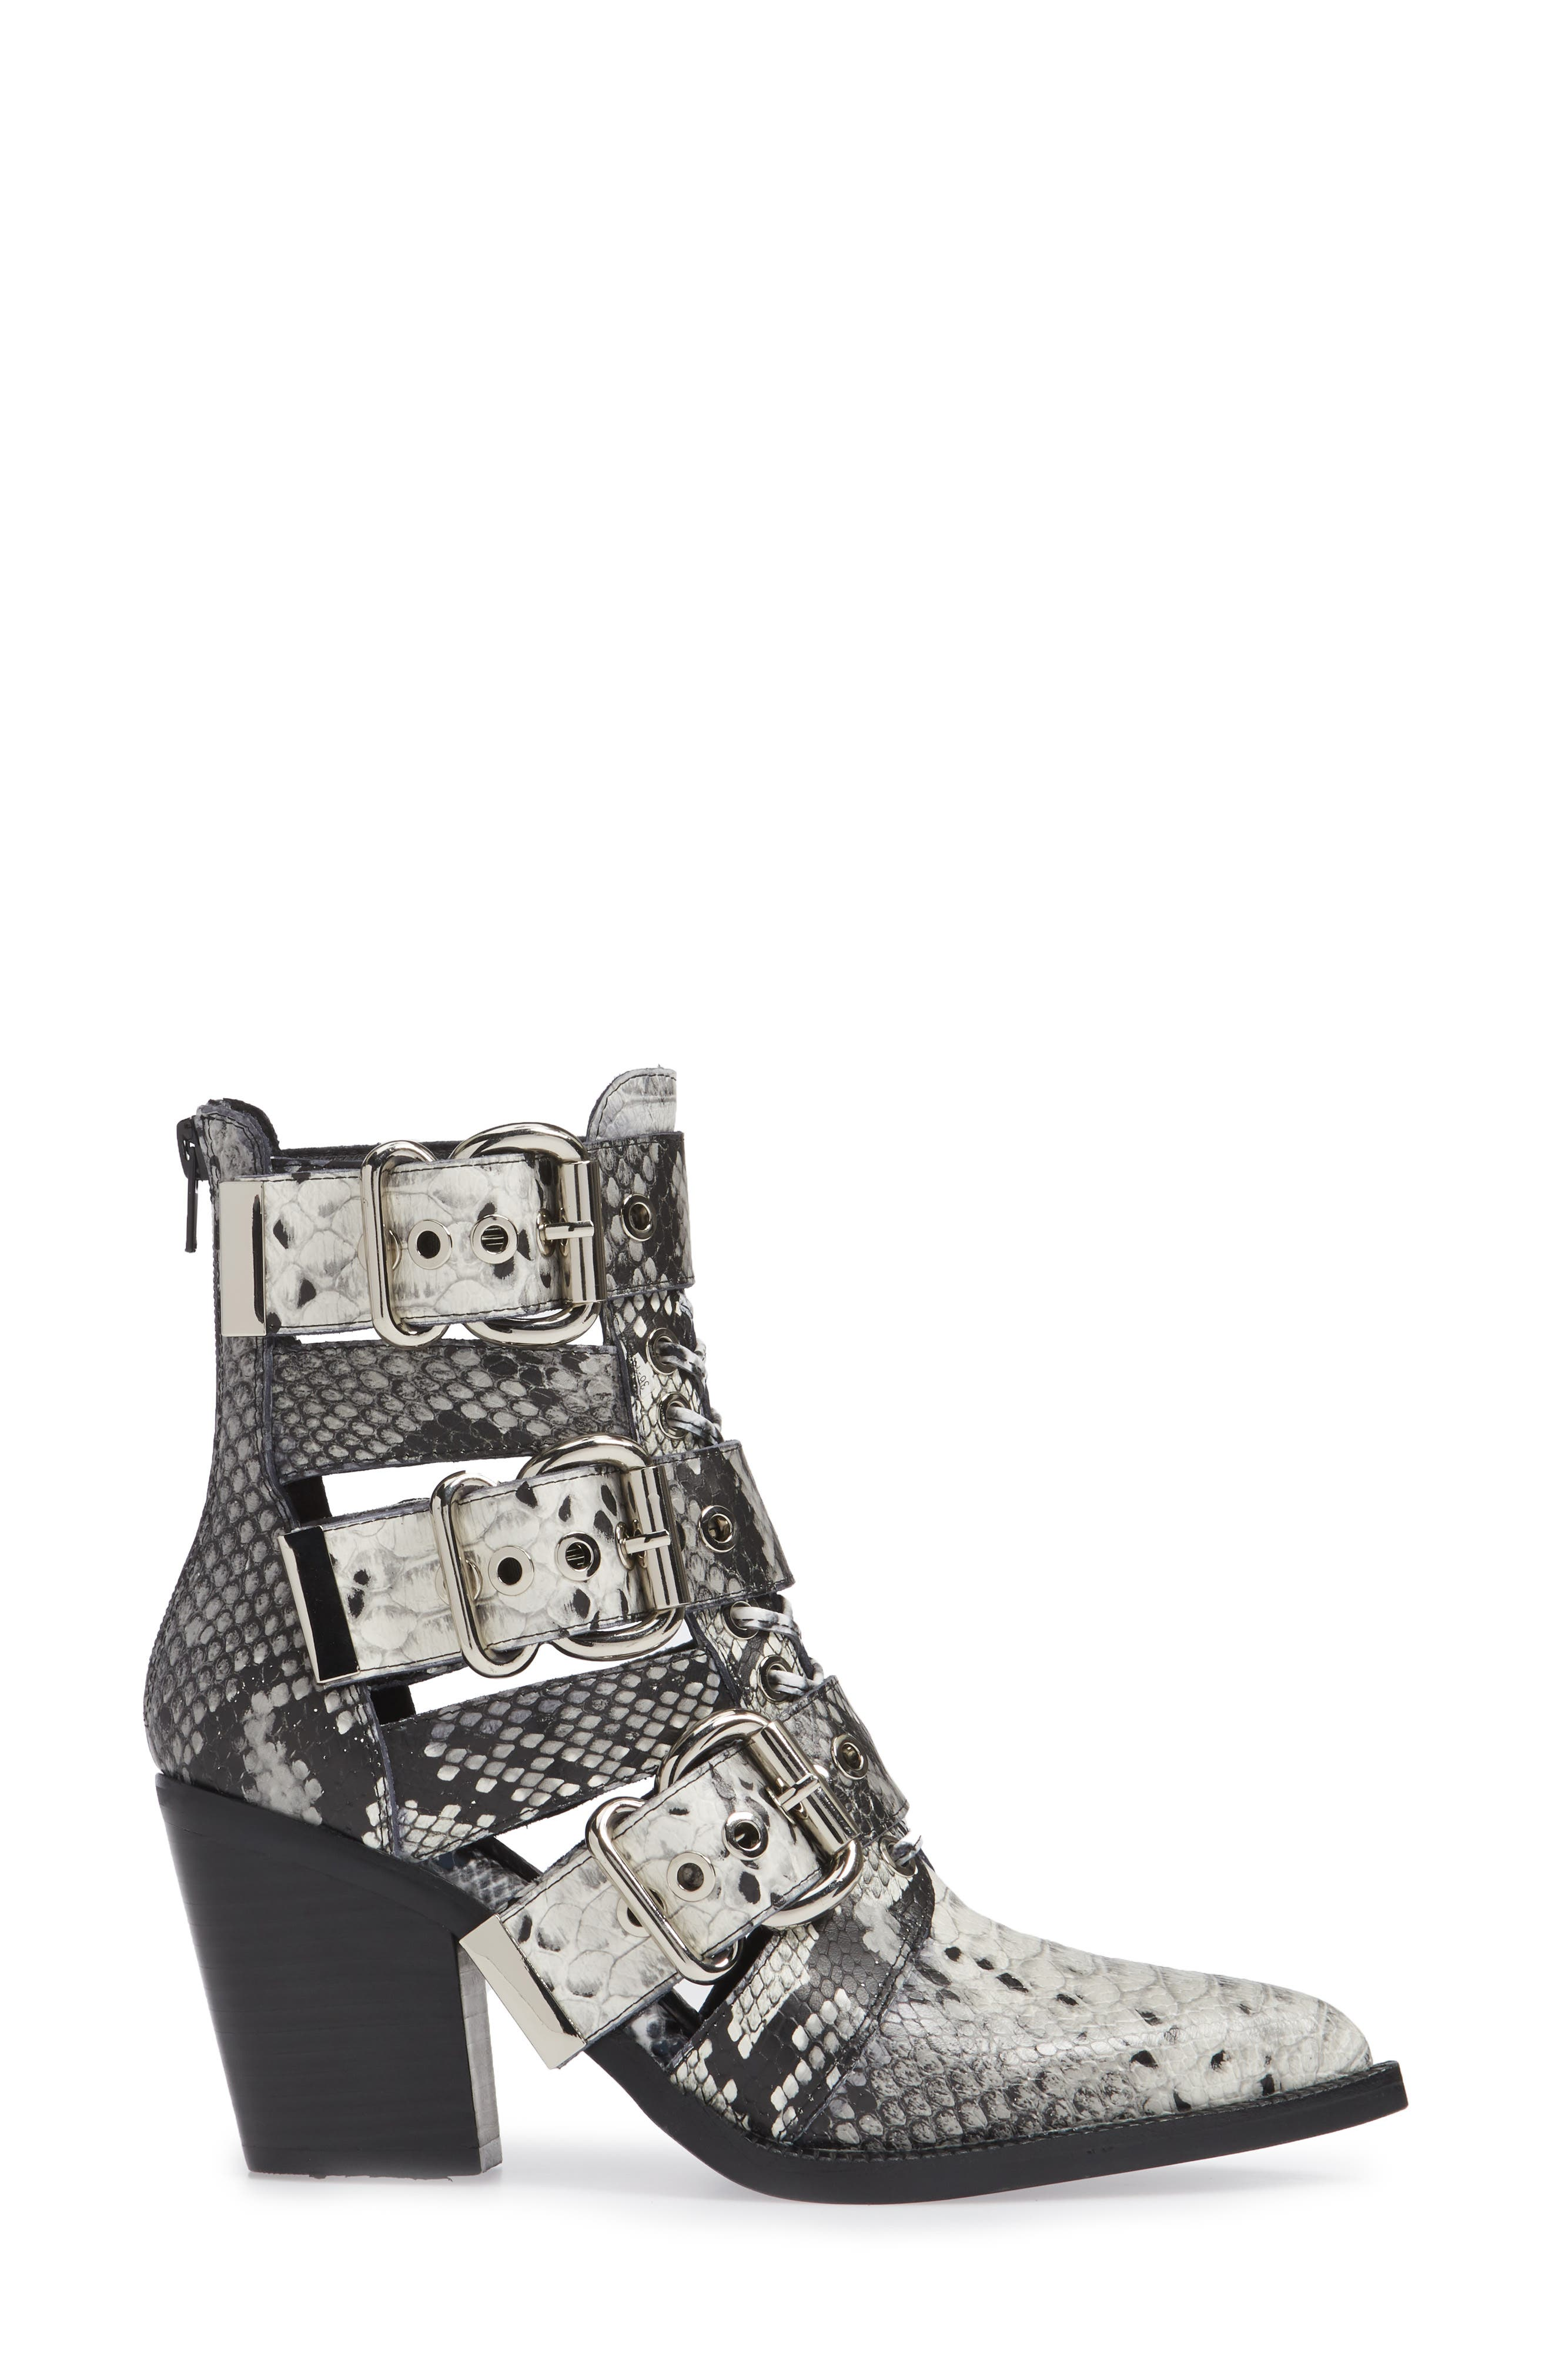 JEFFREY CAMPBELL, Caceres Bootie, Alternate thumbnail 3, color, 001